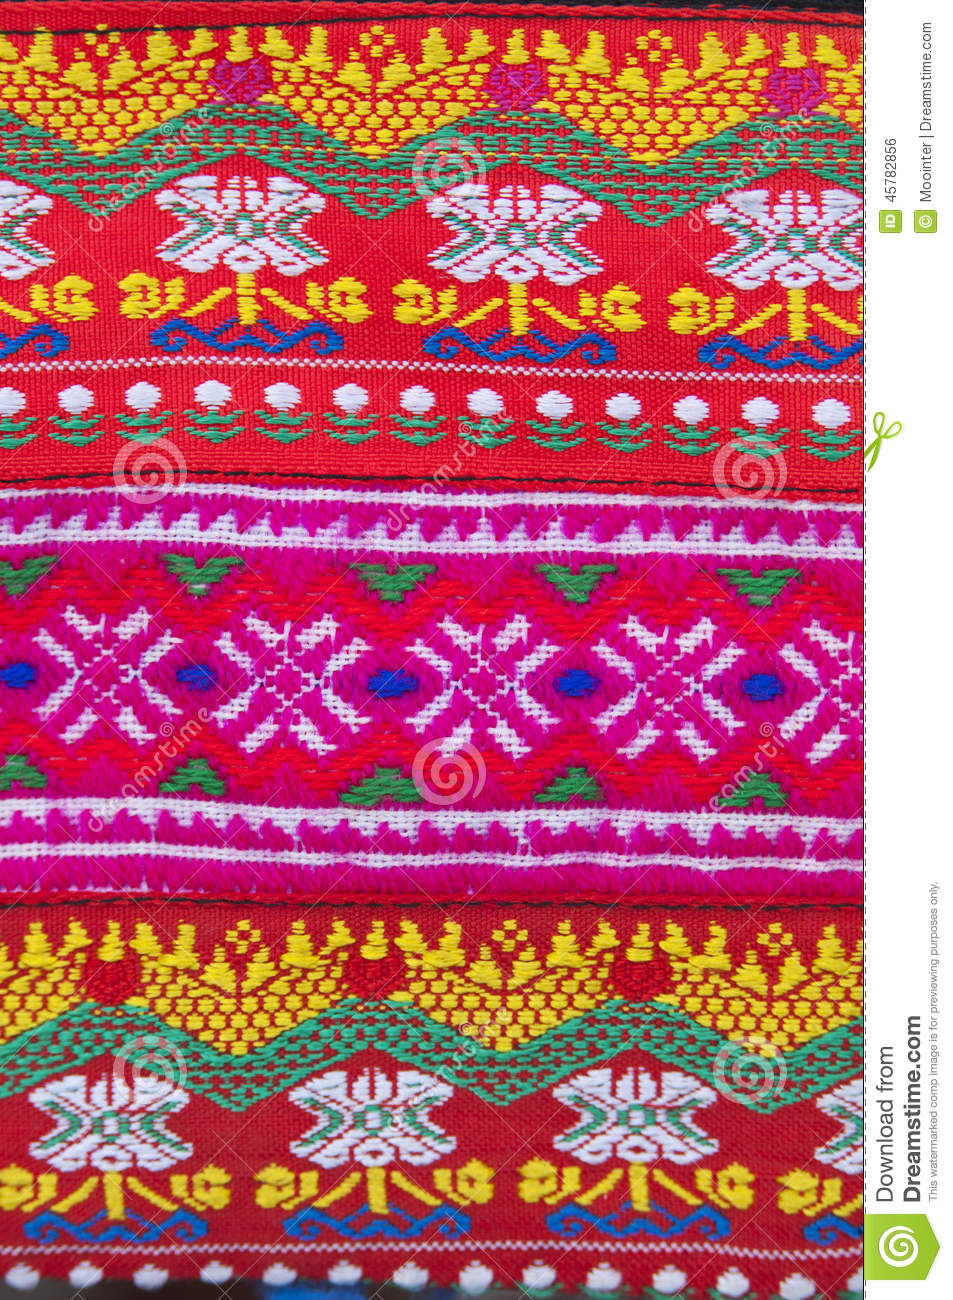 Tradition handwork fabric of hill tribe background,Thailand